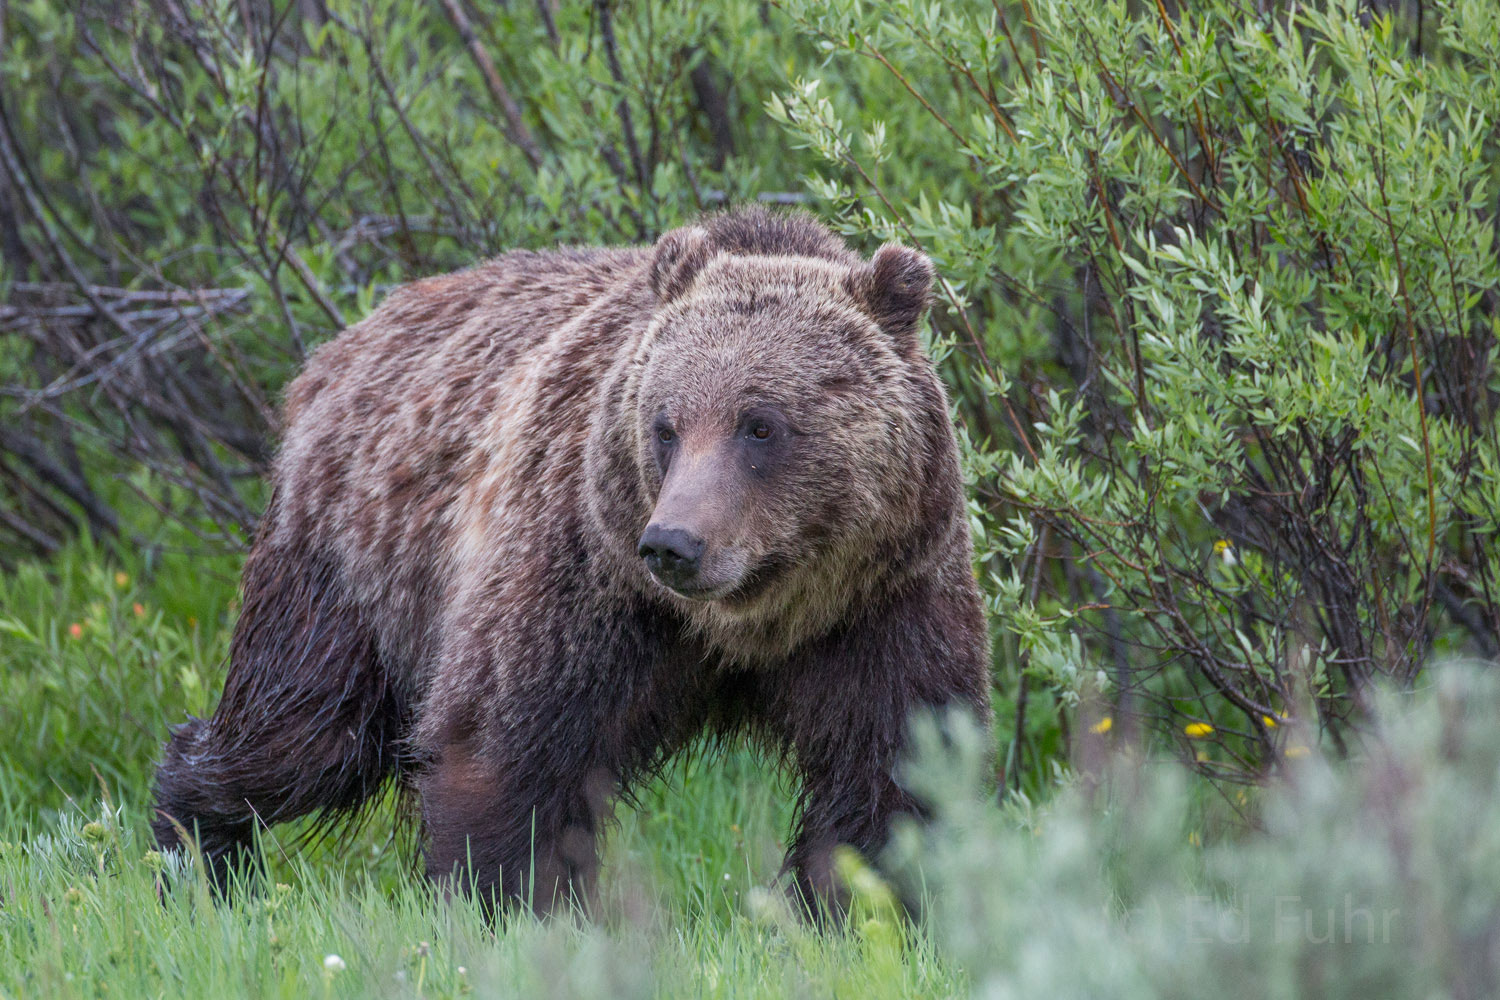 Grizzly 760 moves along the willow hedges that abut the sage and grass meadows where he feeds.